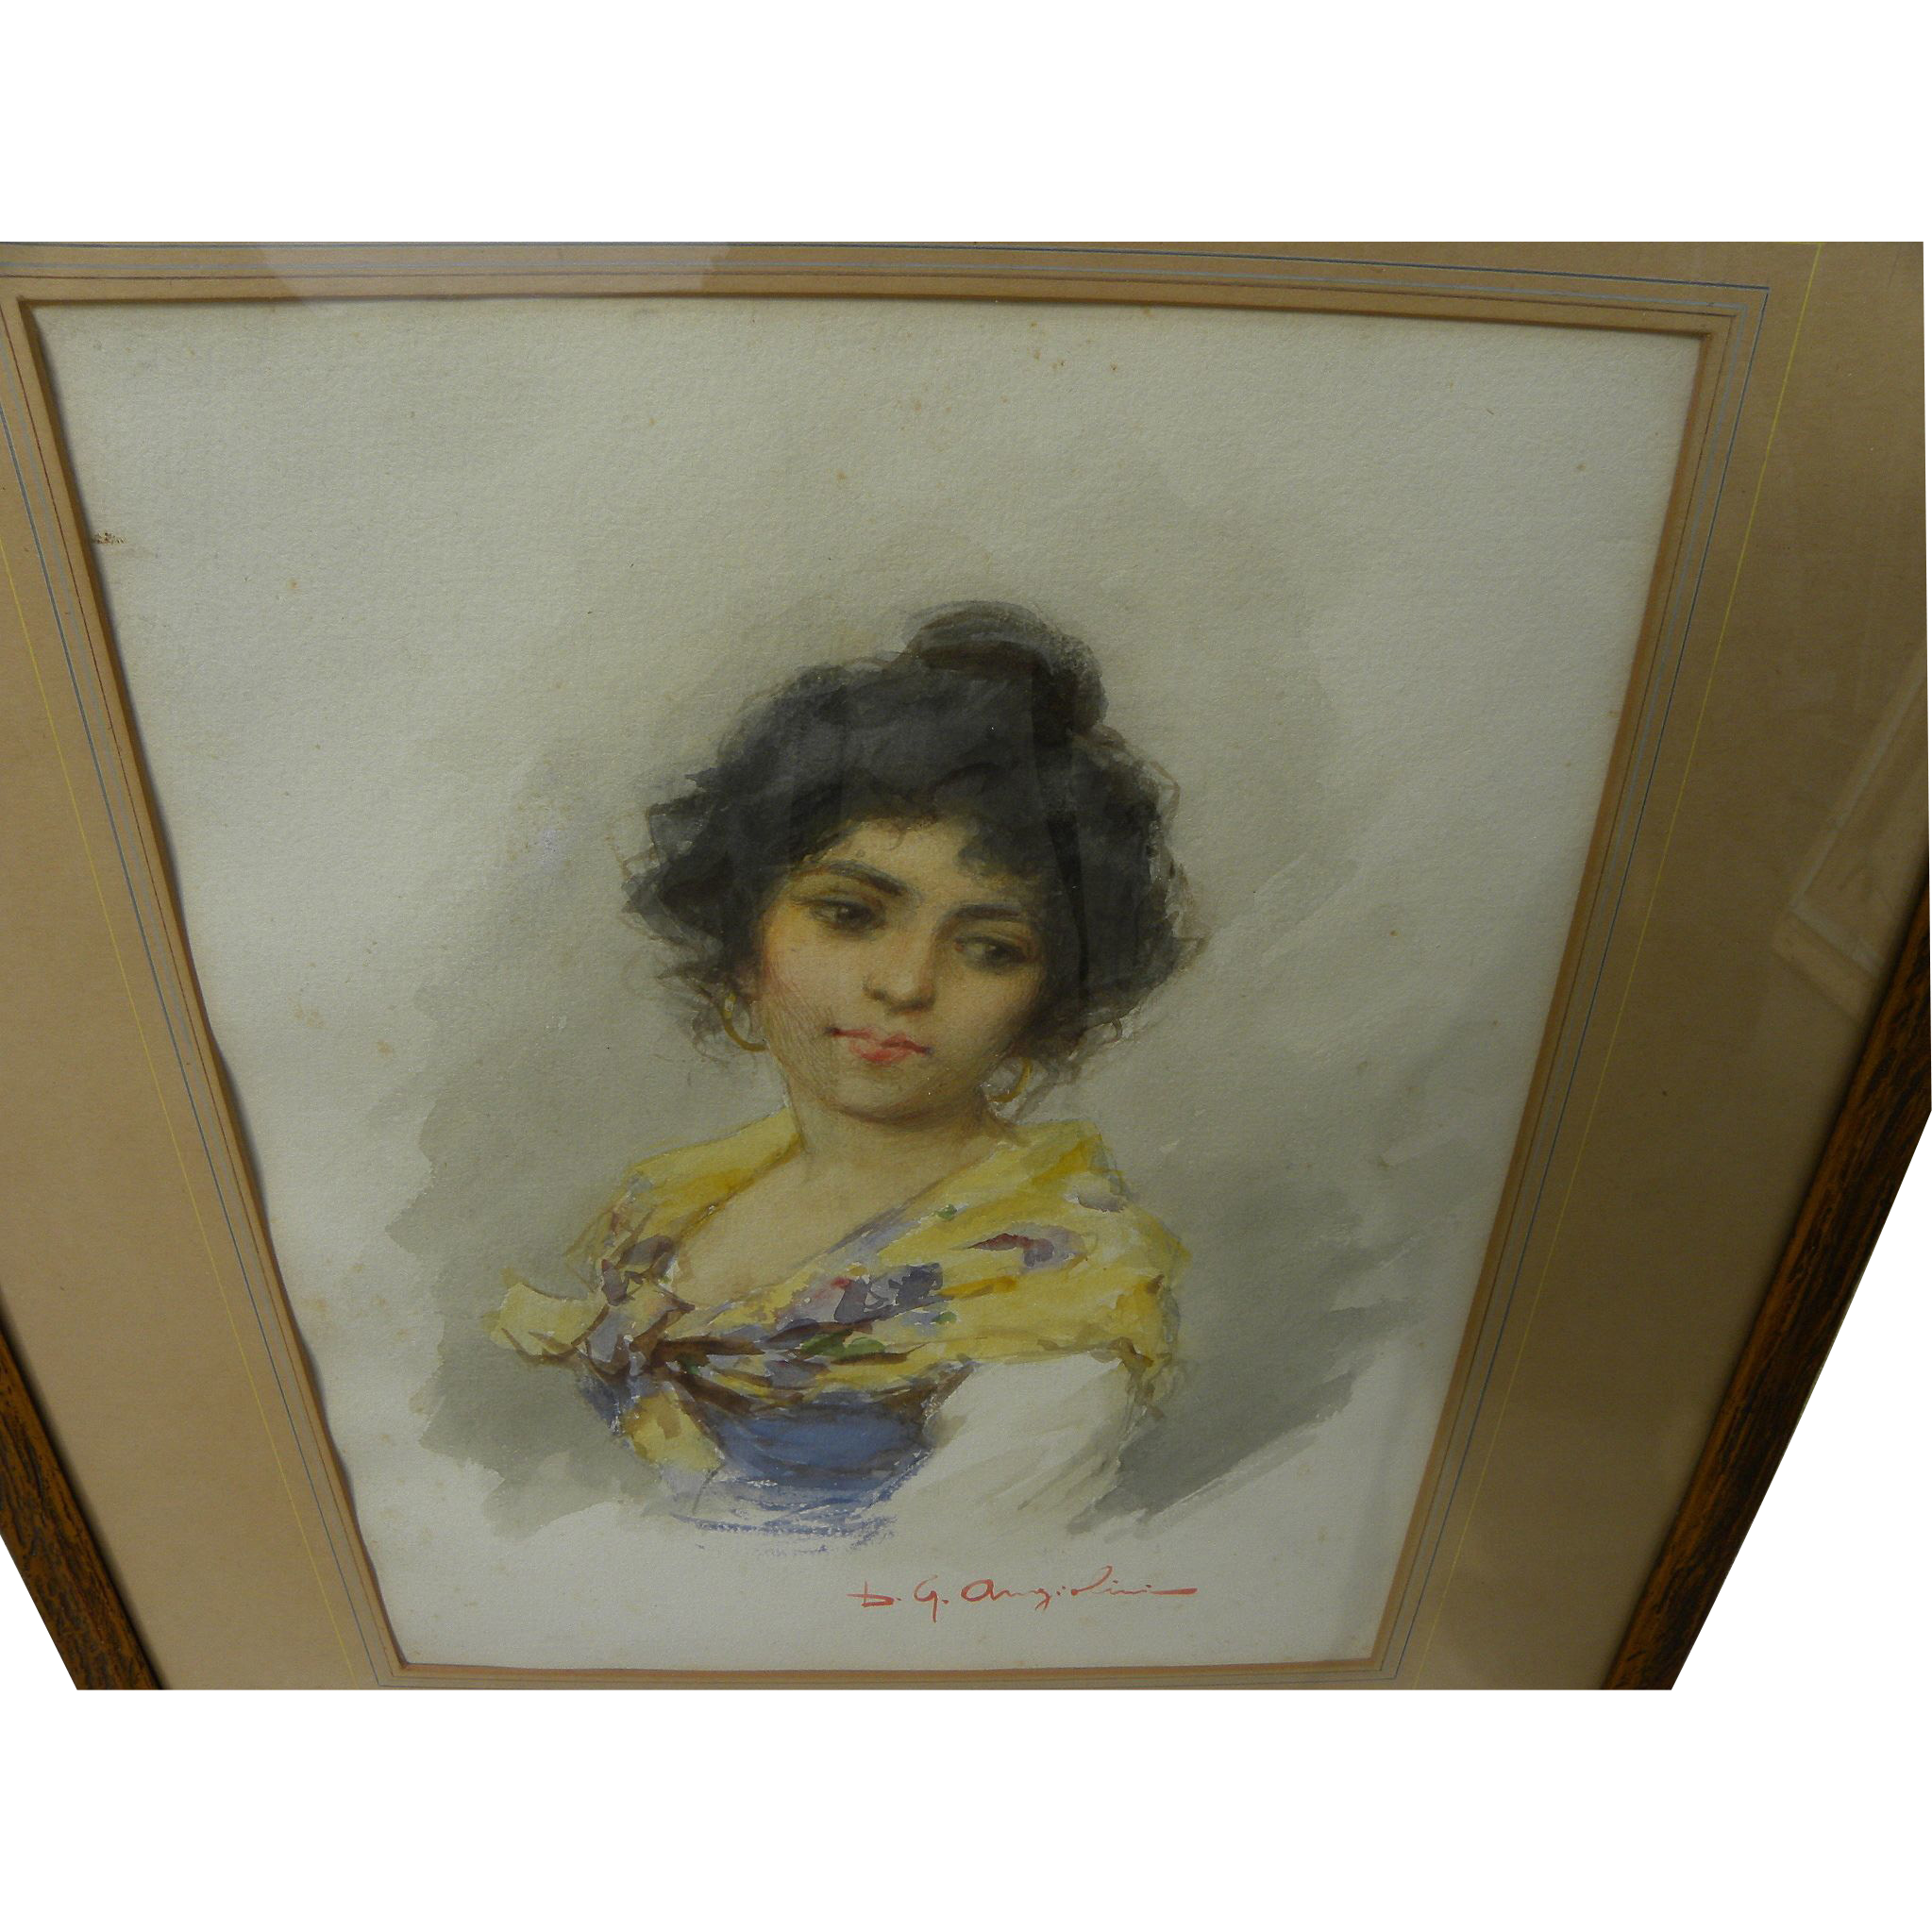 Italian circa 1900 watercolor painting of a young woman, signed D. G. Angiolini